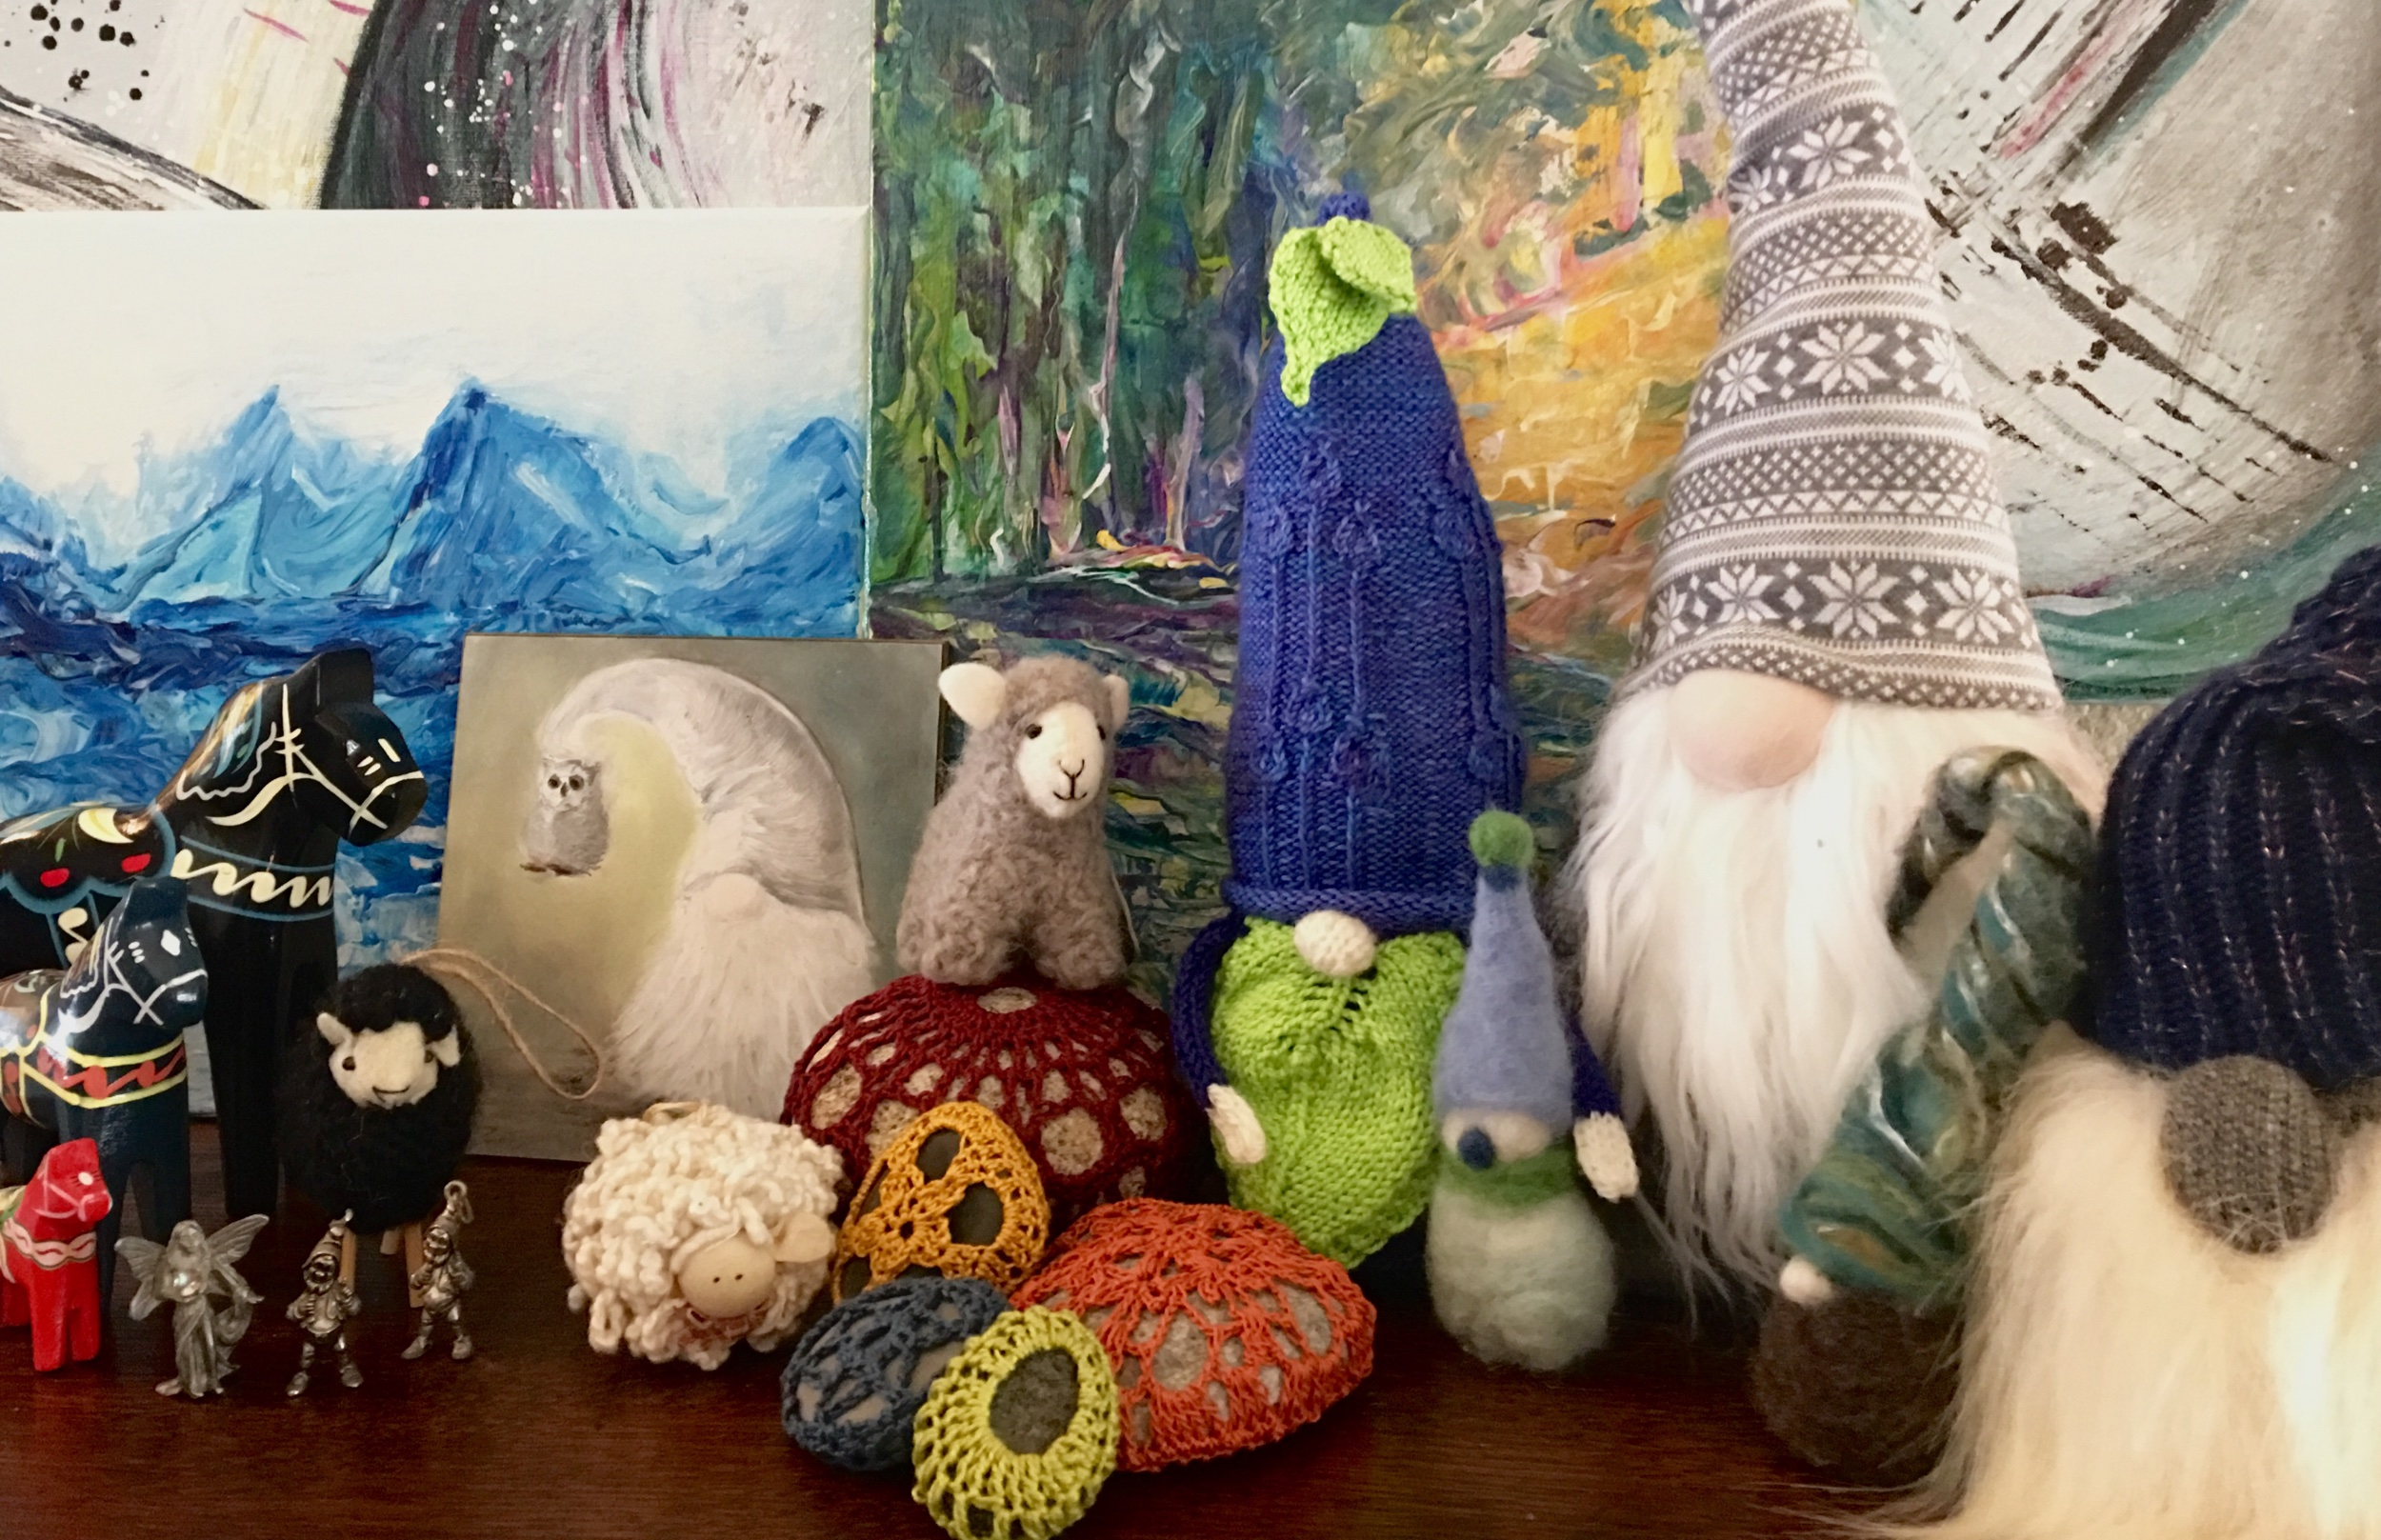 Gnomes and more - Mixed gnome setting with rock formations, felted , Seawn & knit gnomes & various paintings